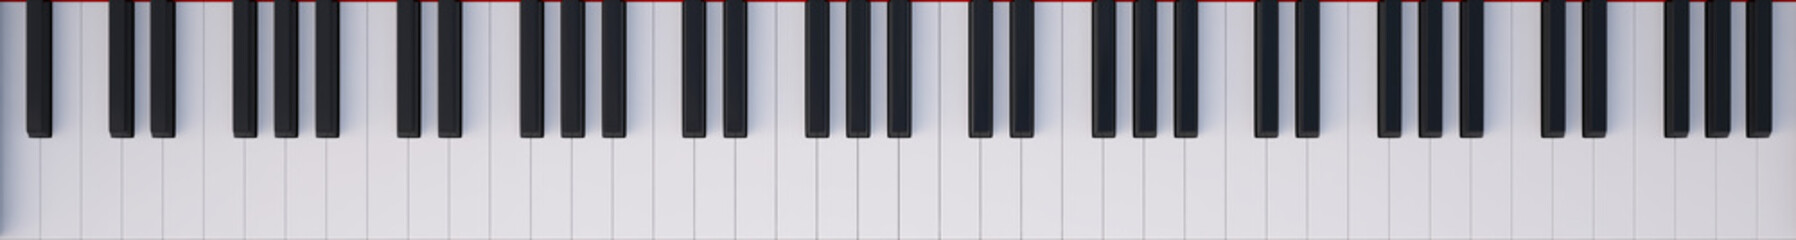 Keyboard Piano top view. 3d illustration high resolution